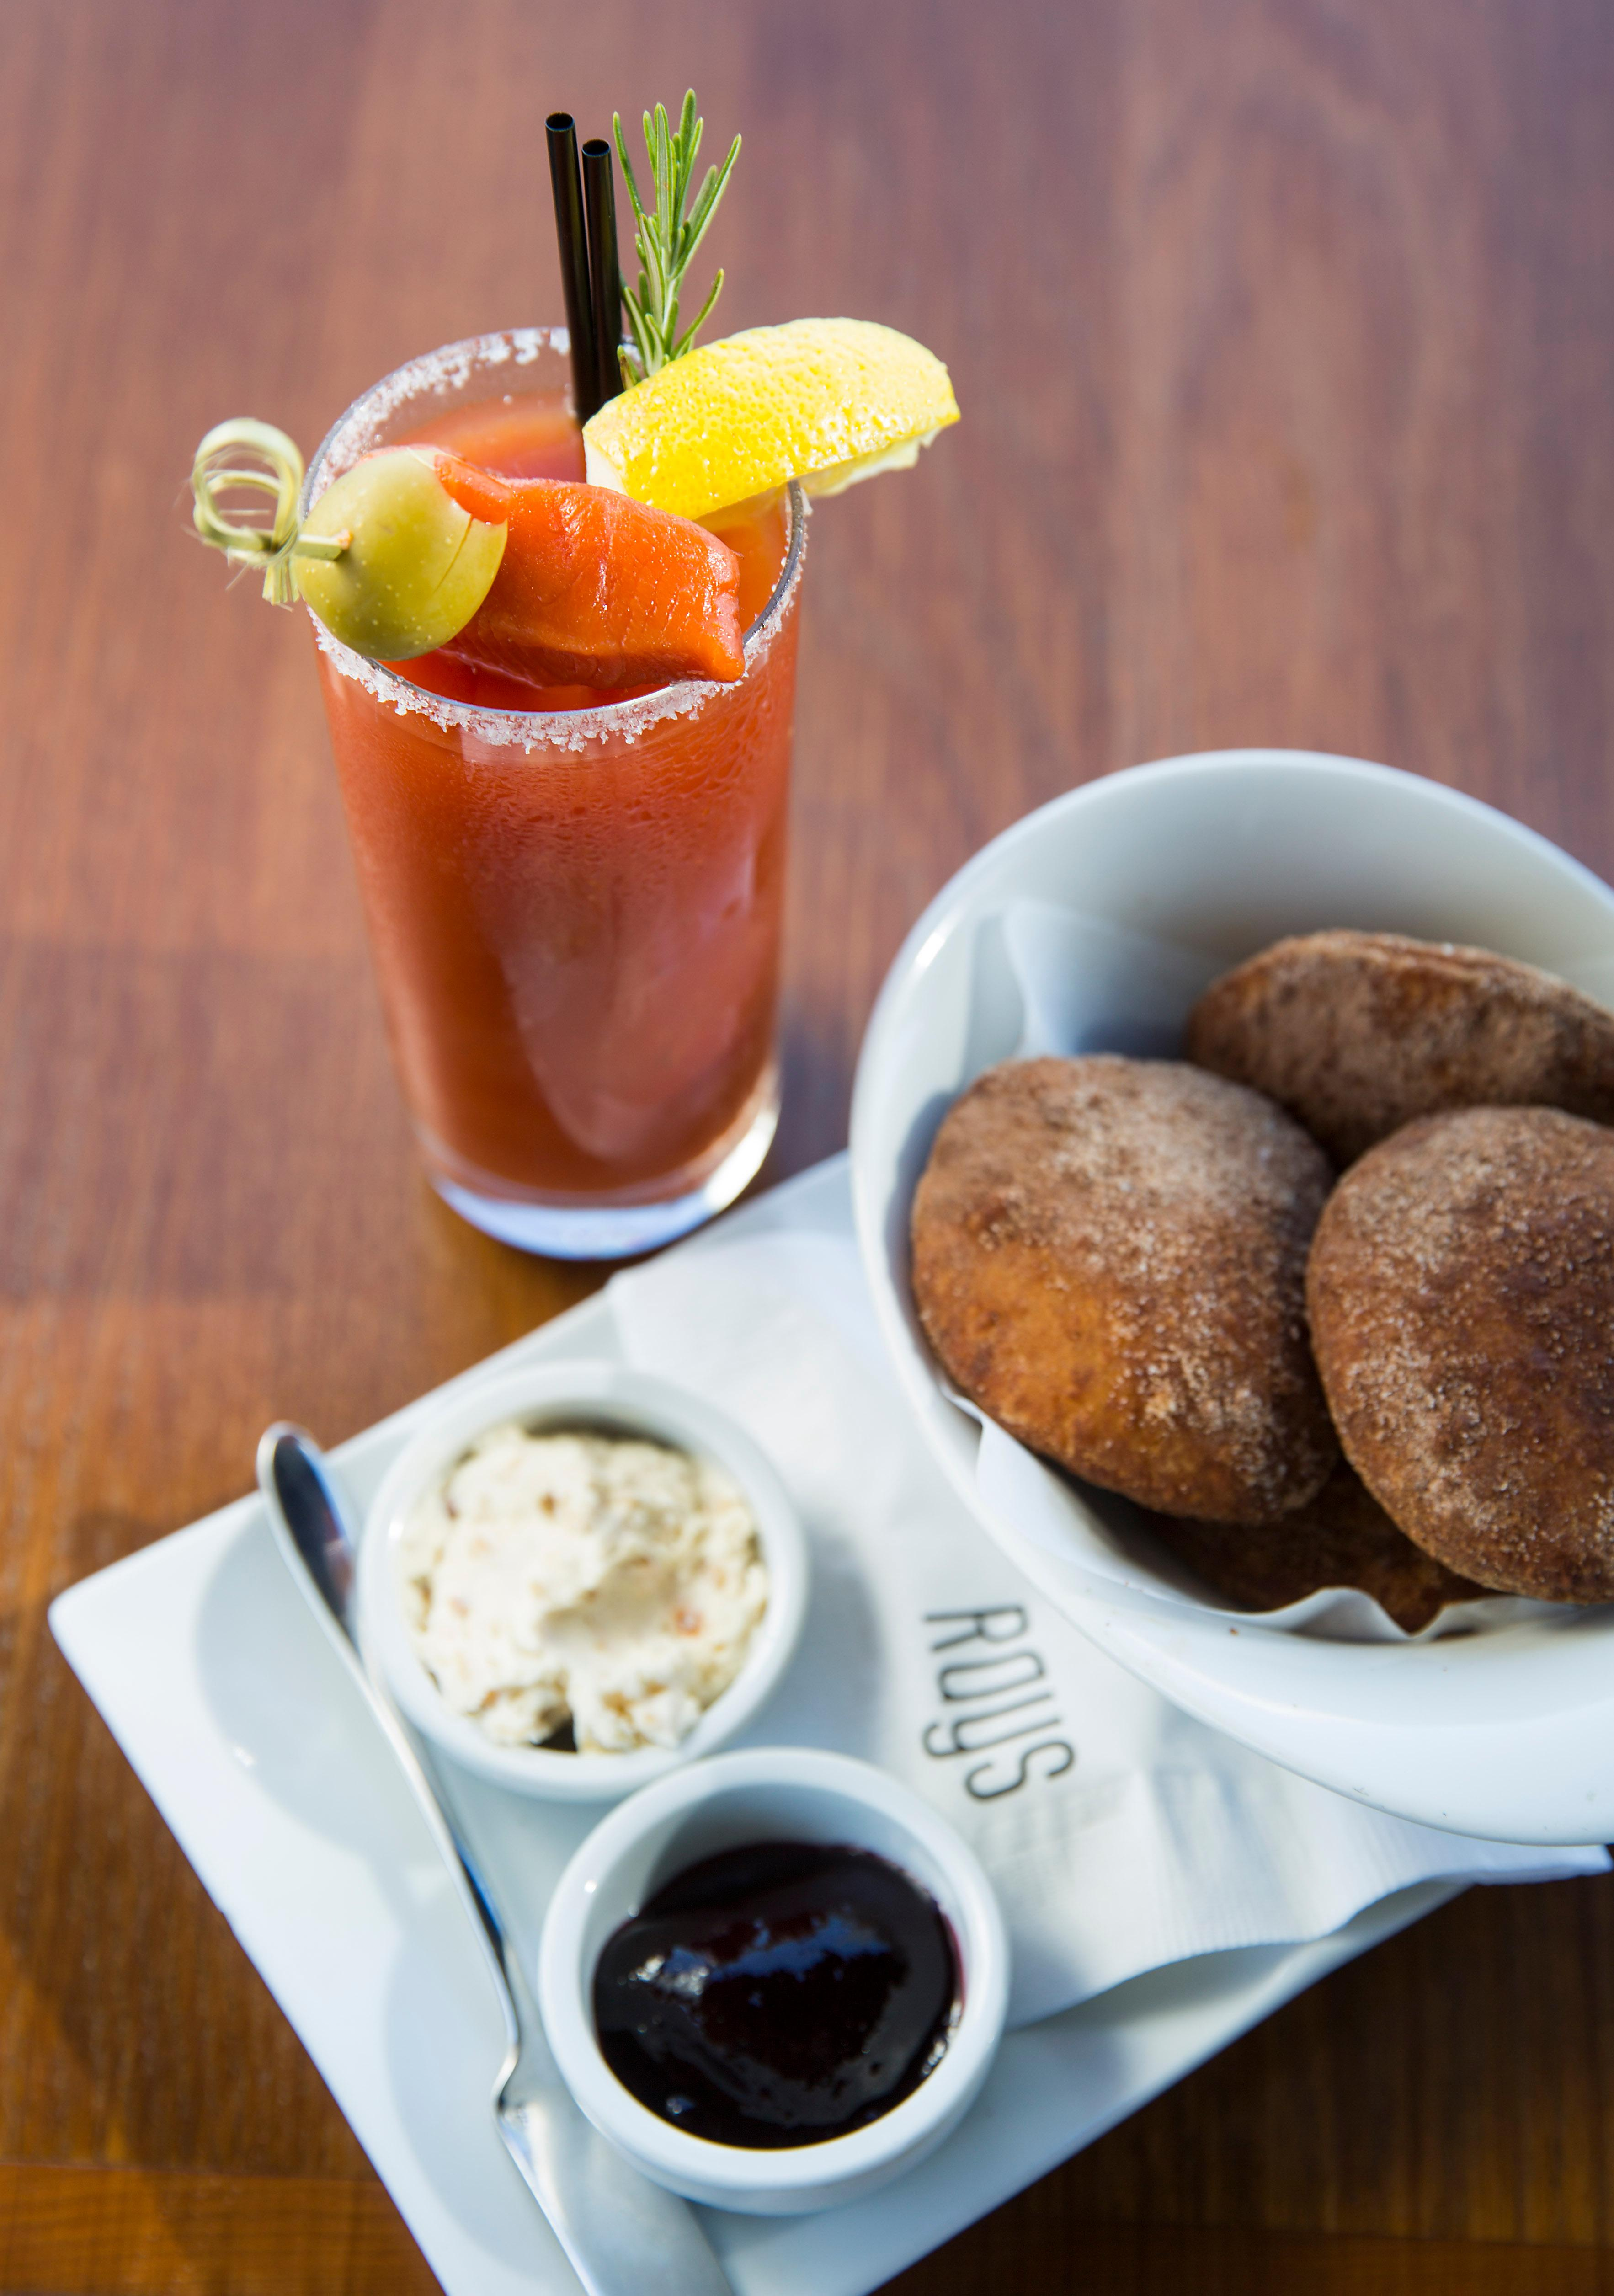 House-Made Beignets, with hazelnut mascarpone and Marion berry jam 12, served next to a Rays Bloody Mary with smoked salmon, at Ray's Boathouse in Ballard. Ray's Boathouse launched its first ongoing weekend brunch for the first time in its 44-year history, and guests can now enjoy Ray's beautiful setting over brunch each weekend. (Sy Bean / Seattle Refined)